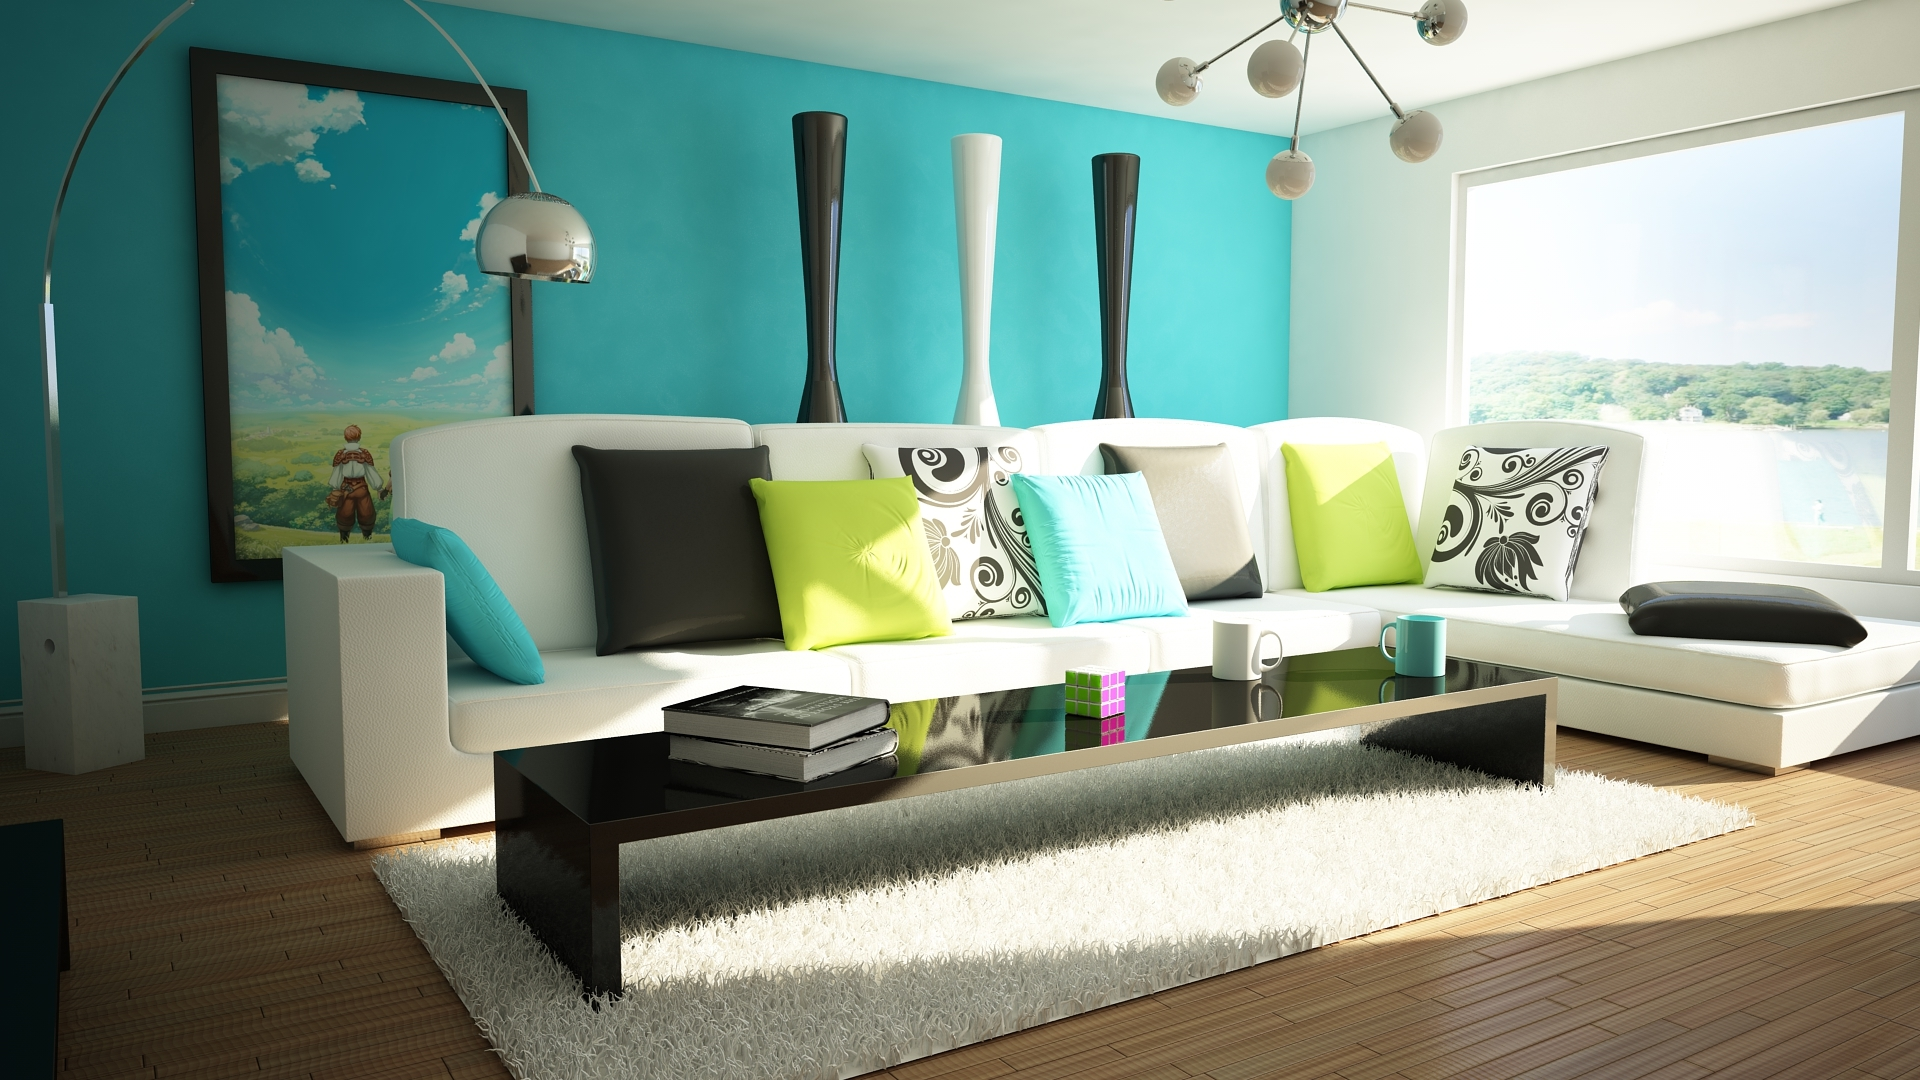 Living room decor - 36 different ways to decorate a living room in ... - ^